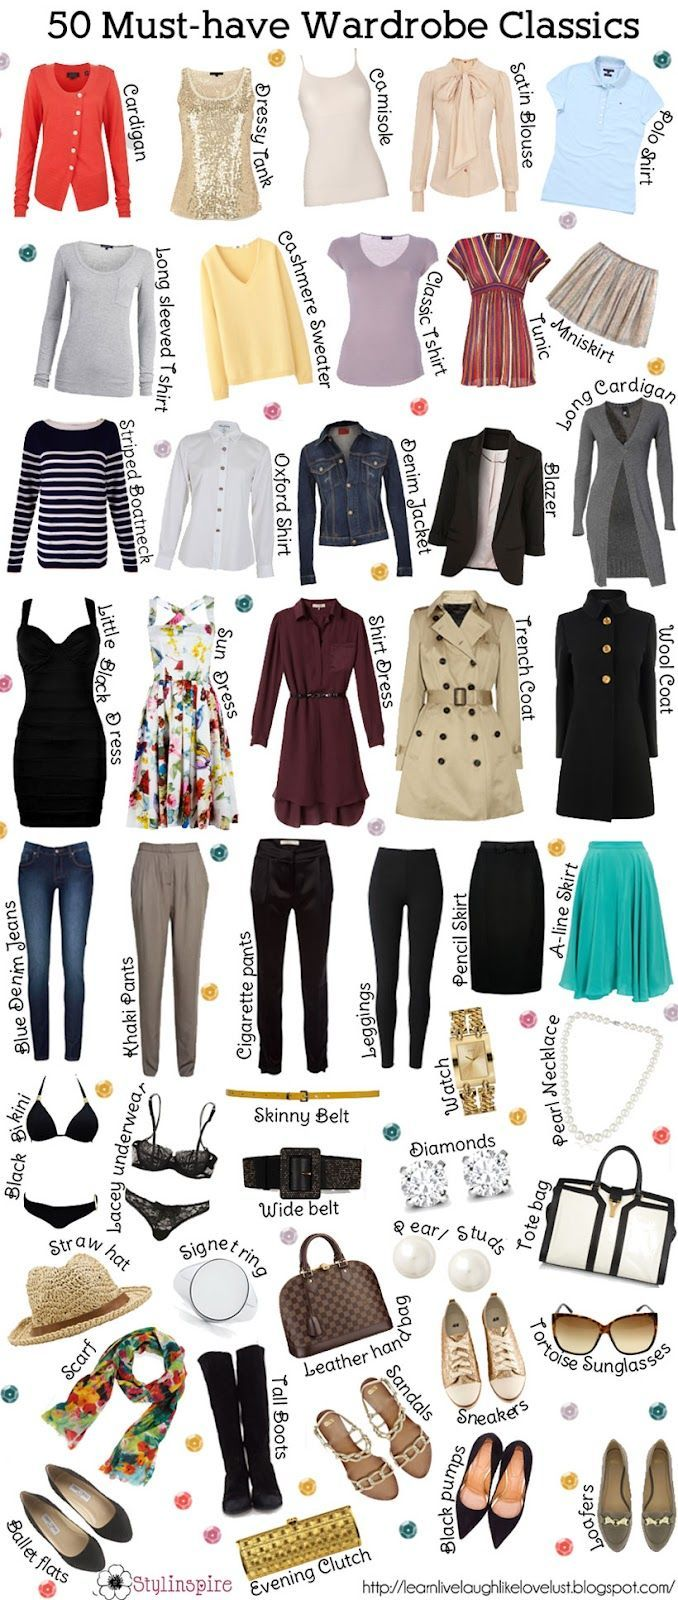 ... Must have clothing items classics for wardrobe..have some .need toprint and make check off list in closet - more → http://sharonfashionwebsites.blogspot.com/2013/04/must-have-clothing-items-classics-for.html